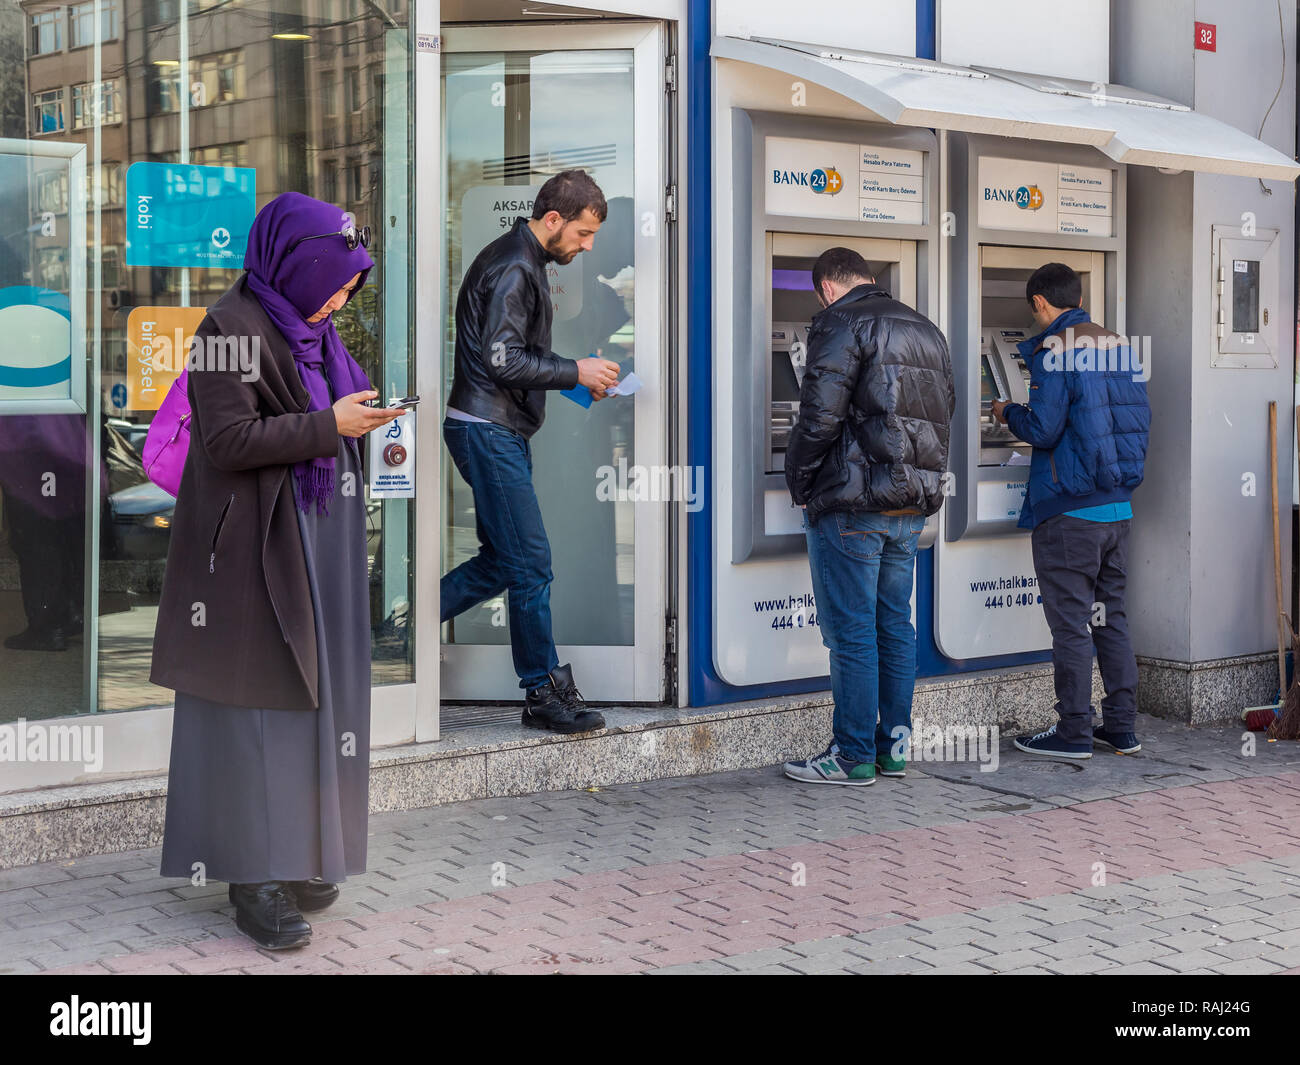 Istanbul, Turkey, February 24, 2015: Four Turkish people in a street, looking down, absorbed in their own activities. - Stock Image